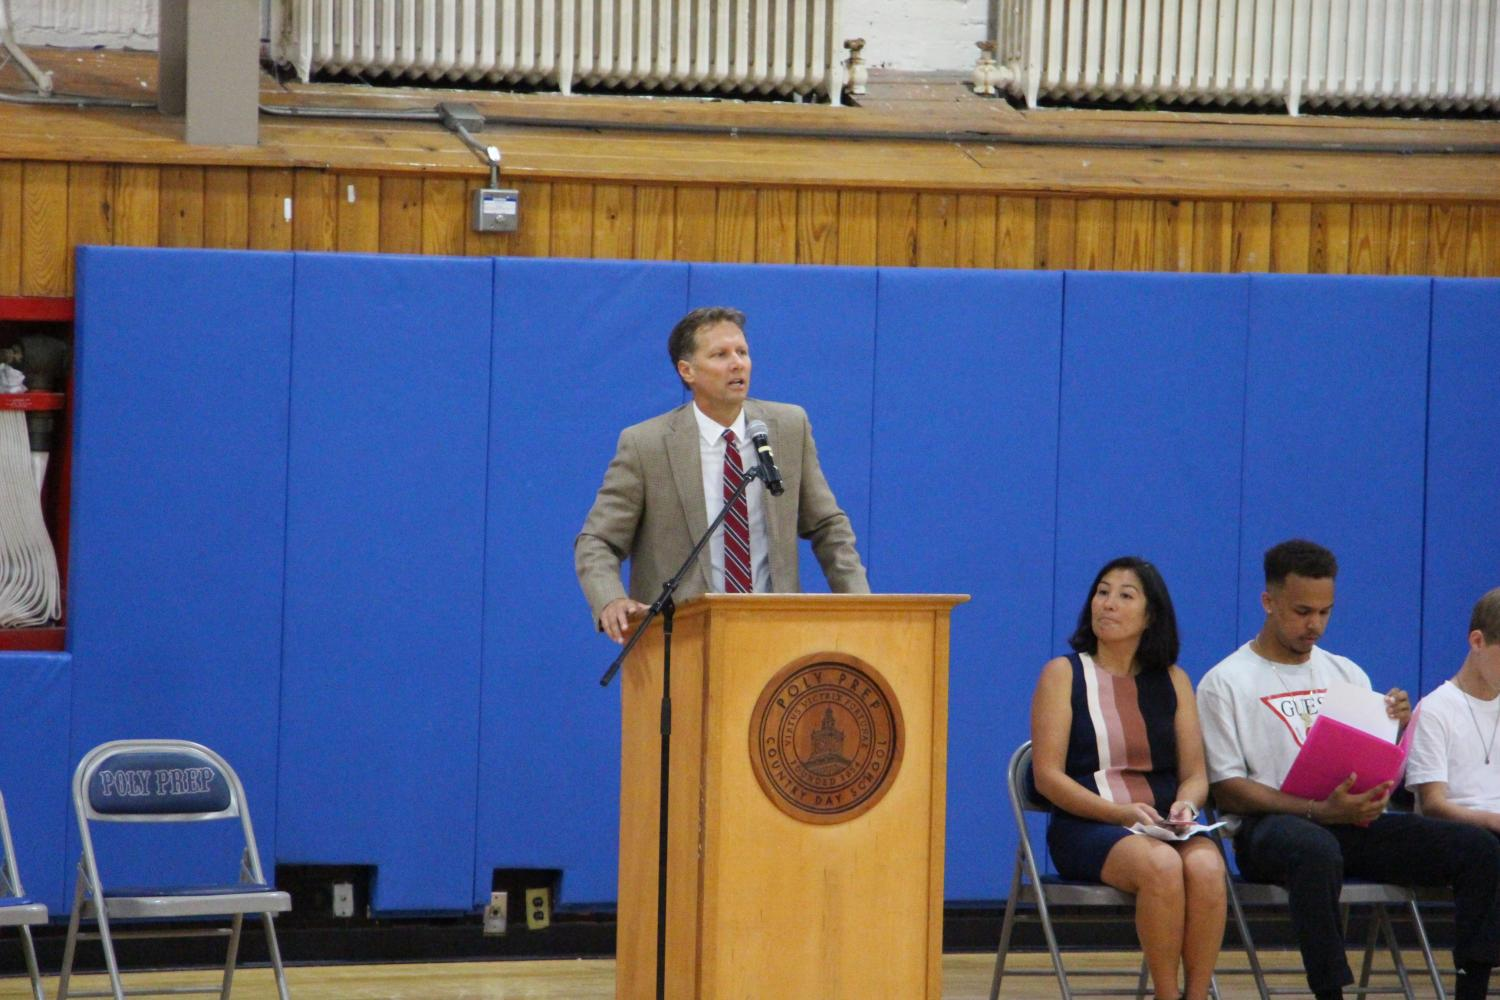 Head of School Audrius Barzdukas speaks to the Middle and Upper Schools at the Opening Assembly on September 5, 2017.